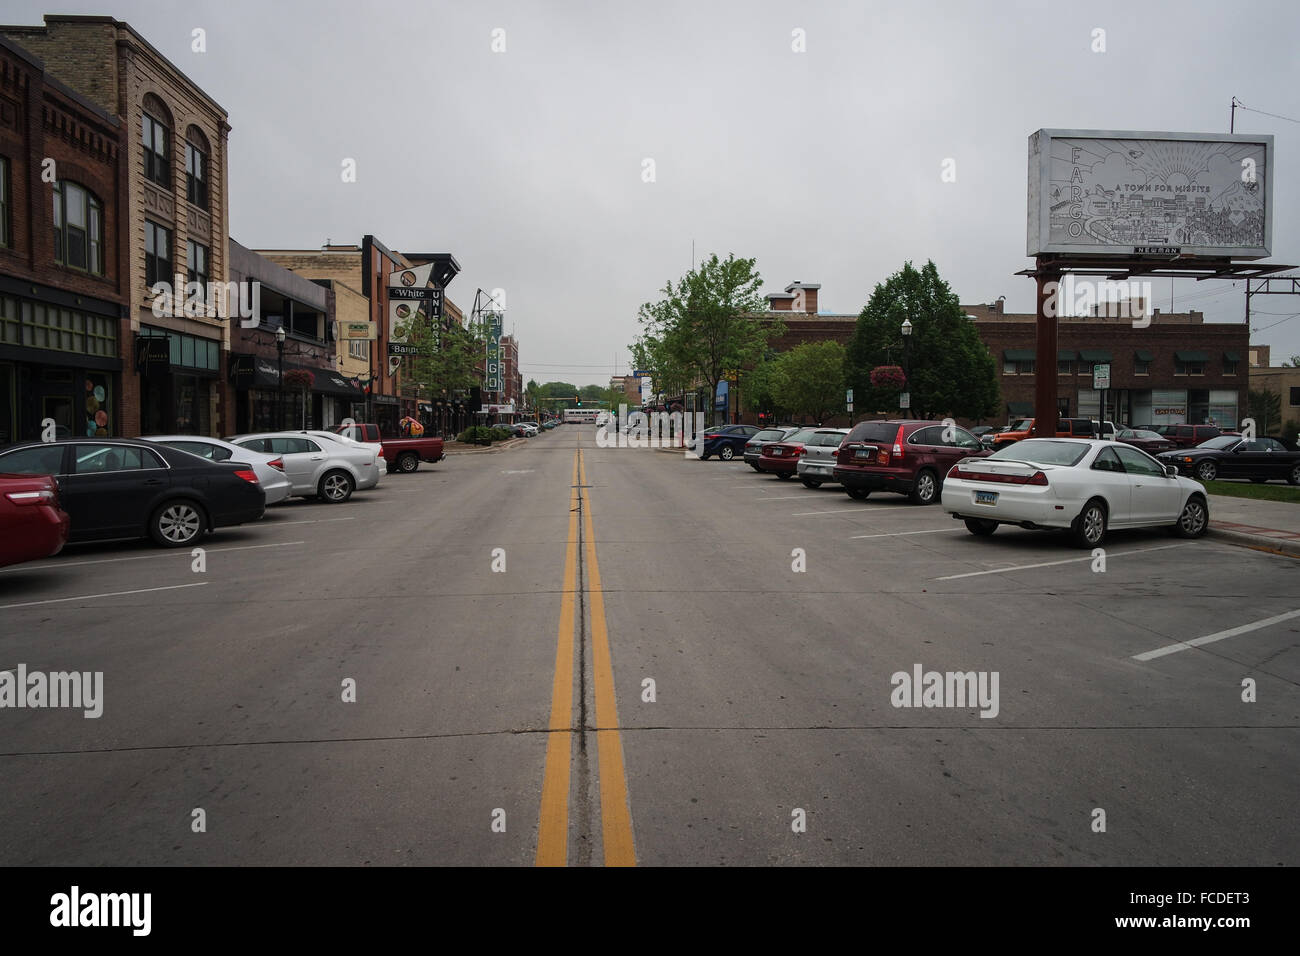 Double Yellow Line On Road In Diminishing Perspective, Cars Parked On Sides - Stock Image